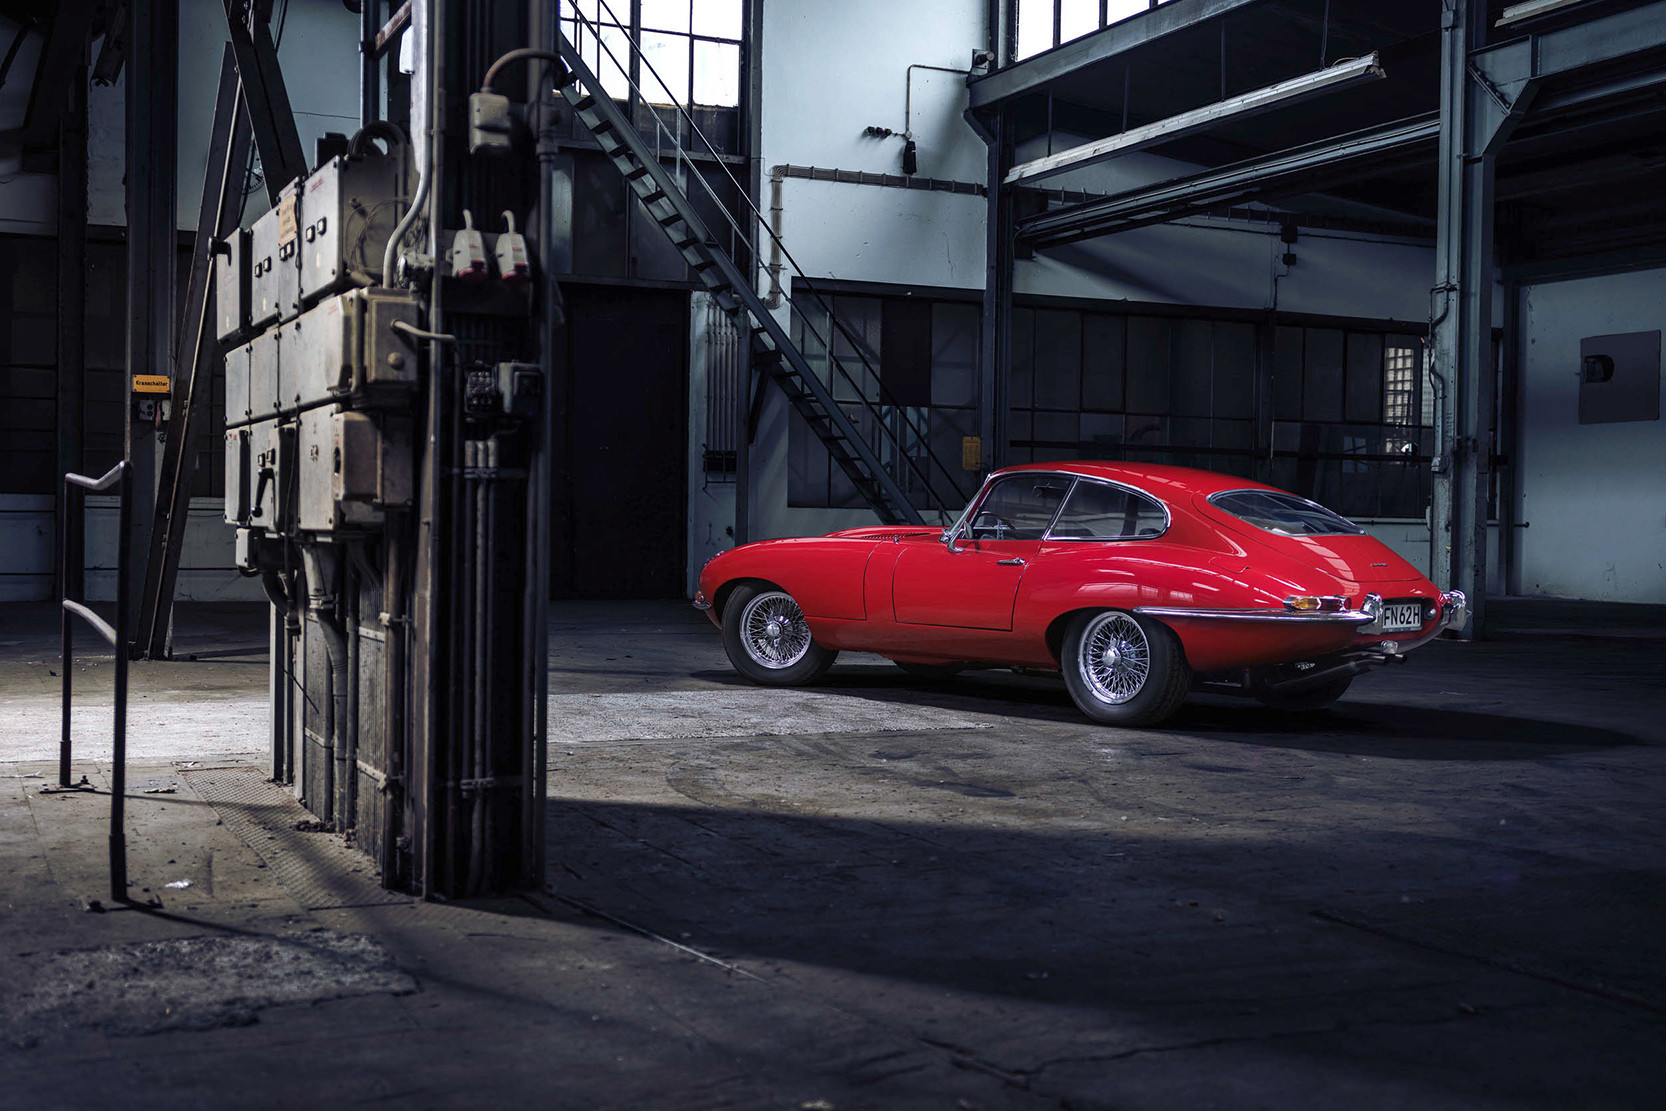 Classic Cars Parked In Garages and Ateliers